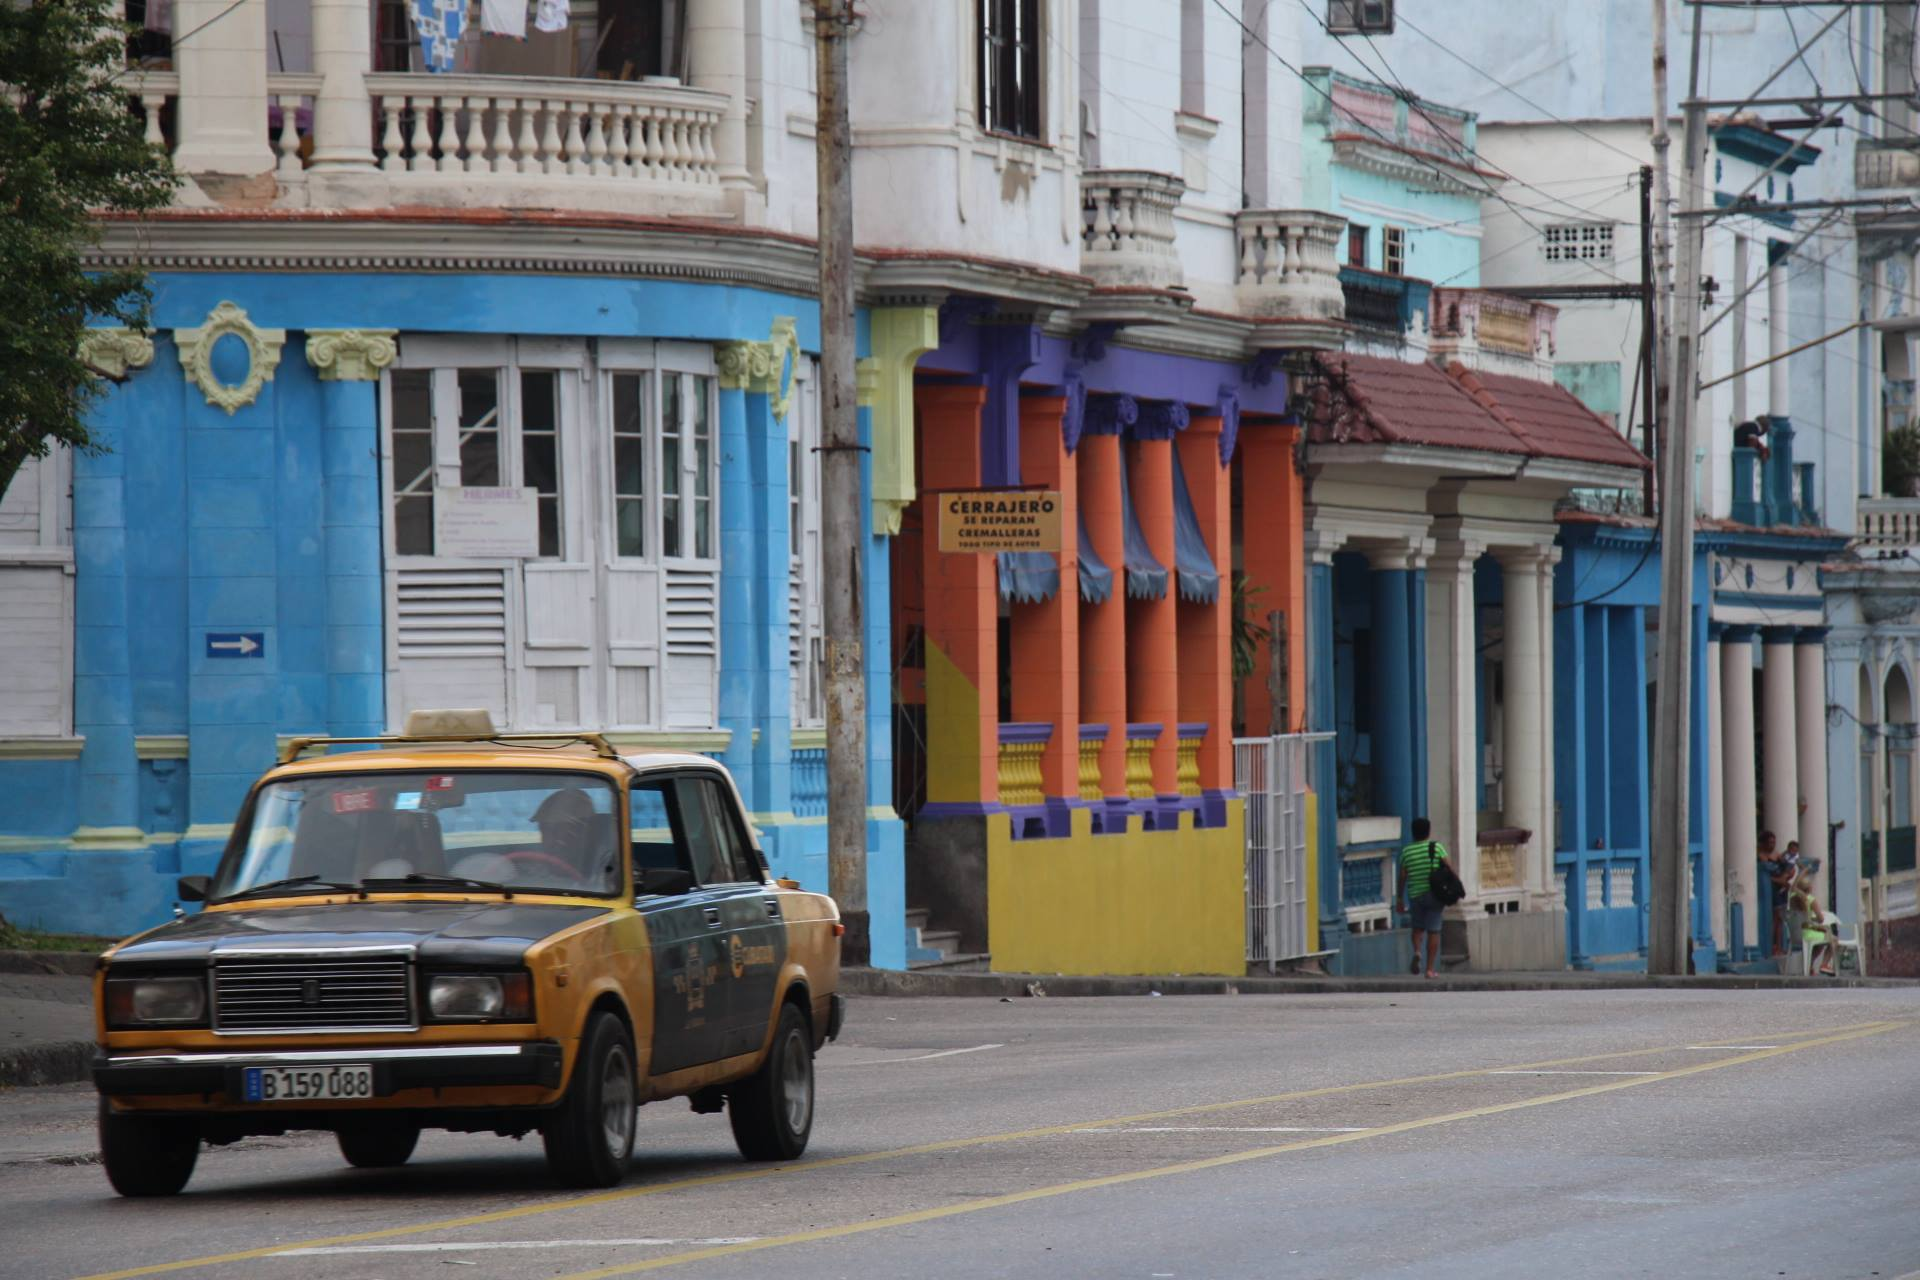 The contrast between the bright colors and the cold realities are the essence of Cuba.